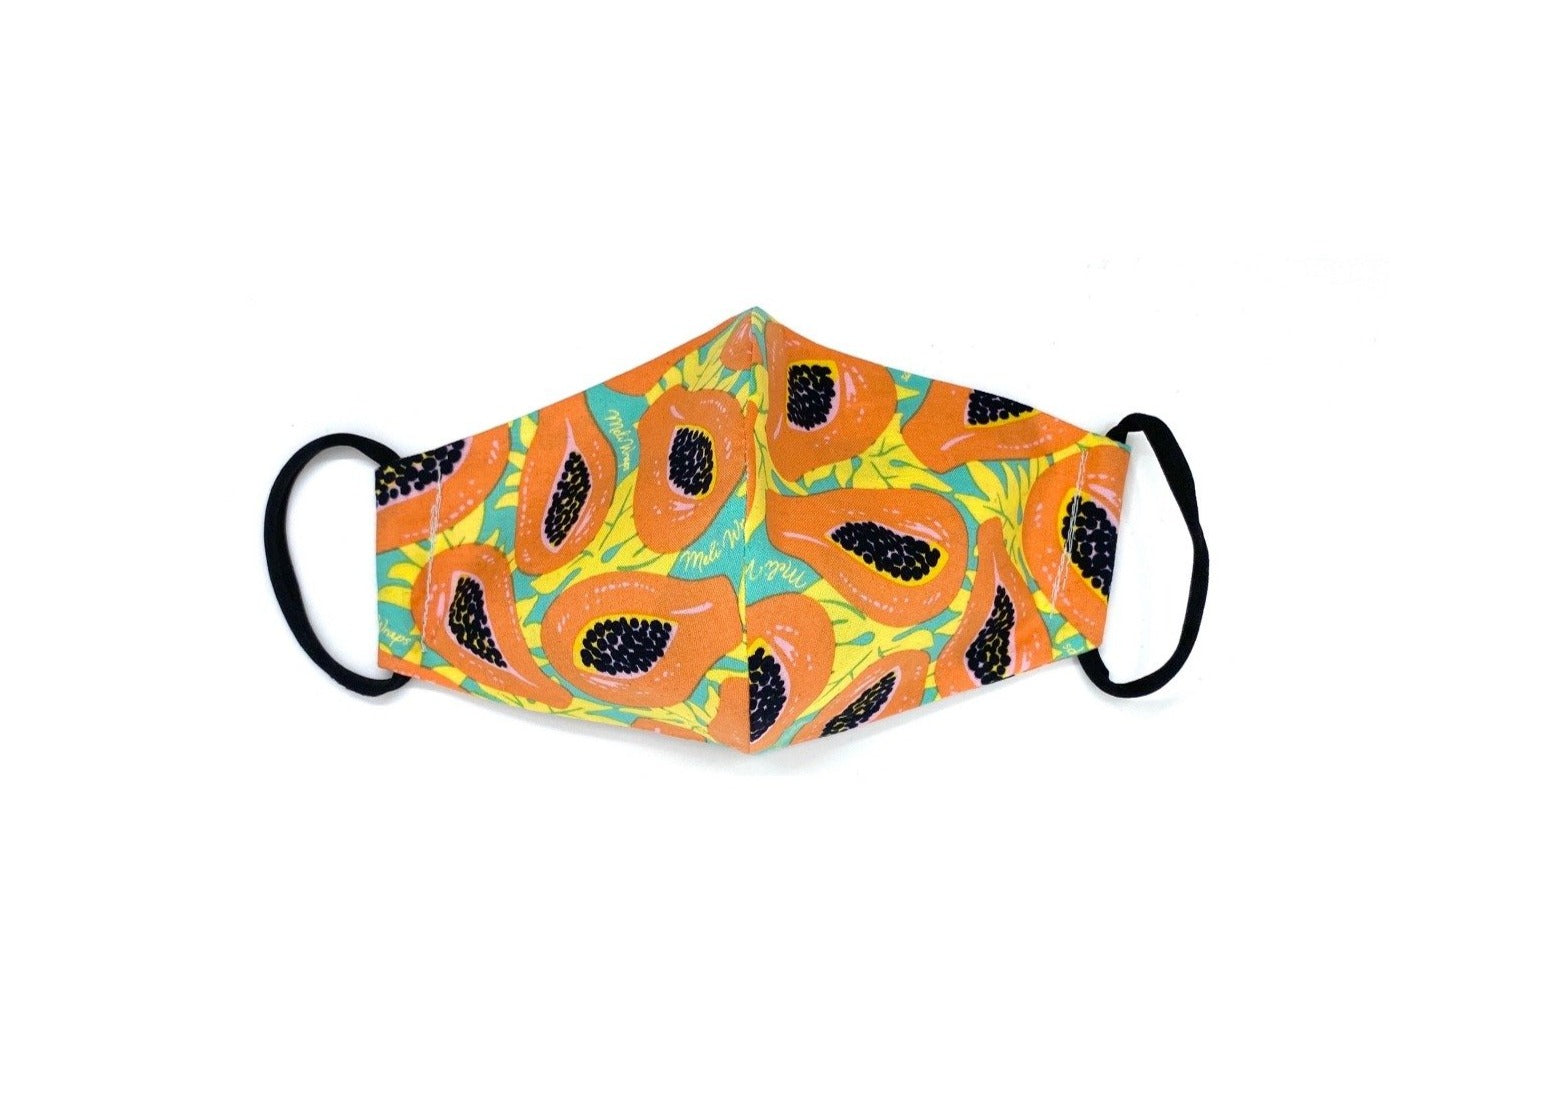 100 % GOTS Organic Cotton Face Mask in Tropical Papaya print